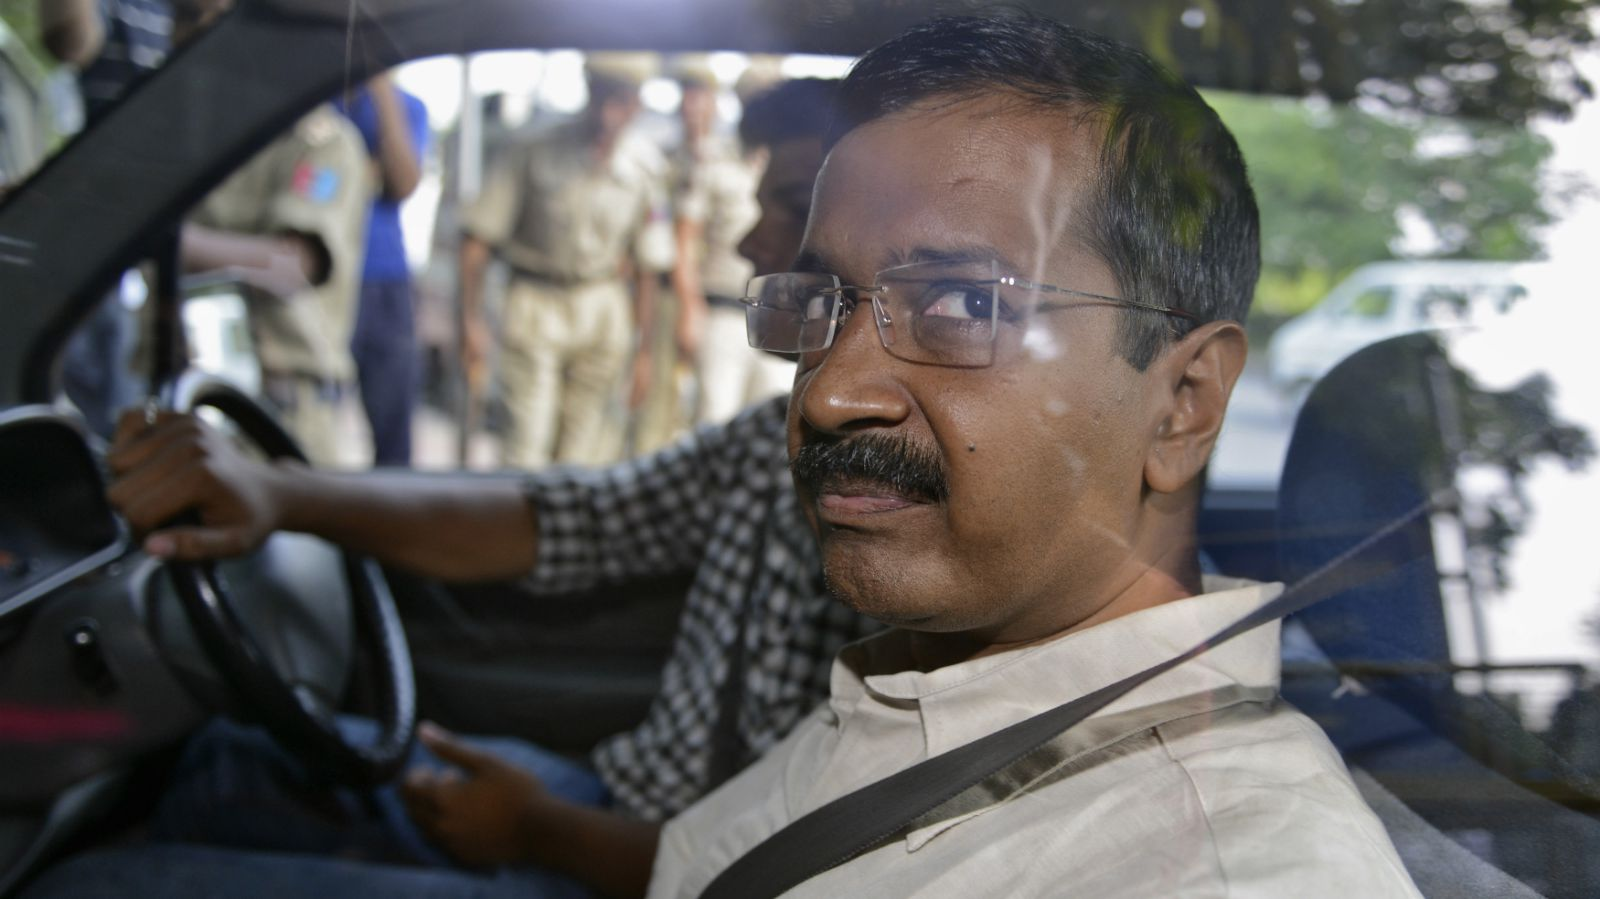 Arvind Kejriwal, the head of the Aam Aadmi (Common Man) Party (AAP), which briefly controlled the state government in Delhi, looks out from inside his car as he arrives at a court in New Delhi May 21, 2014. Kejriwal was sent to judicial custody for two days by a New Delhi court on Wednesday in connection with a defamation case filed against him by a leader of Hindu nationalist Bharatiya Janata Party (BJP).